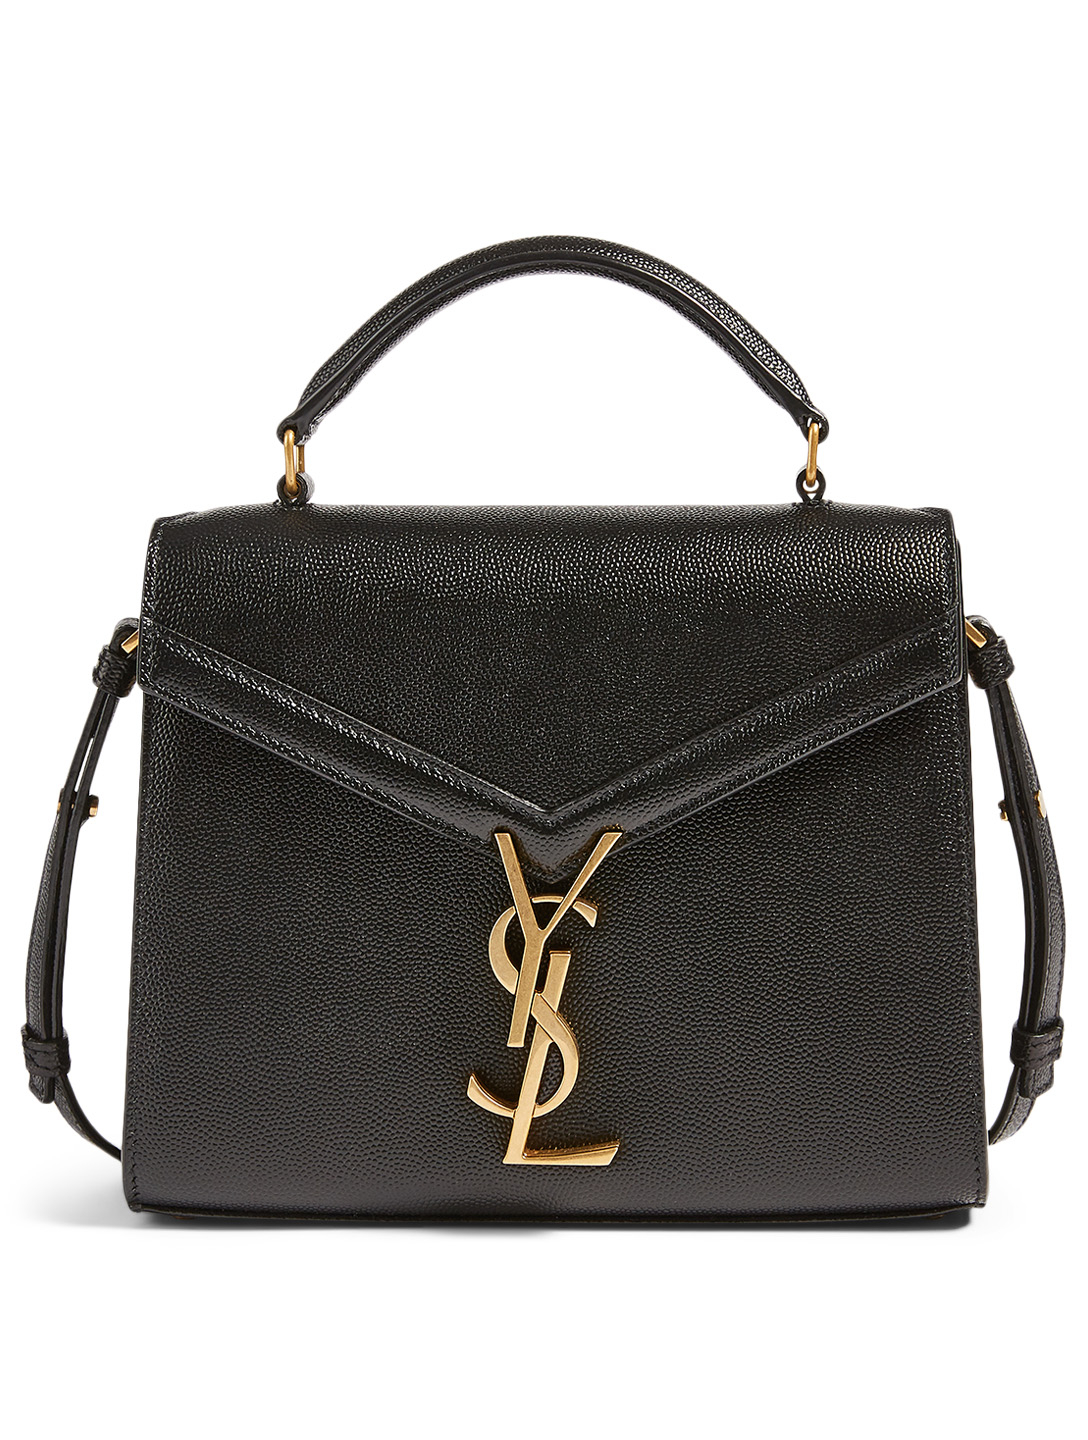 SAINT LAURENT Cassandra YSL Monogram Leather Bag Women's Black